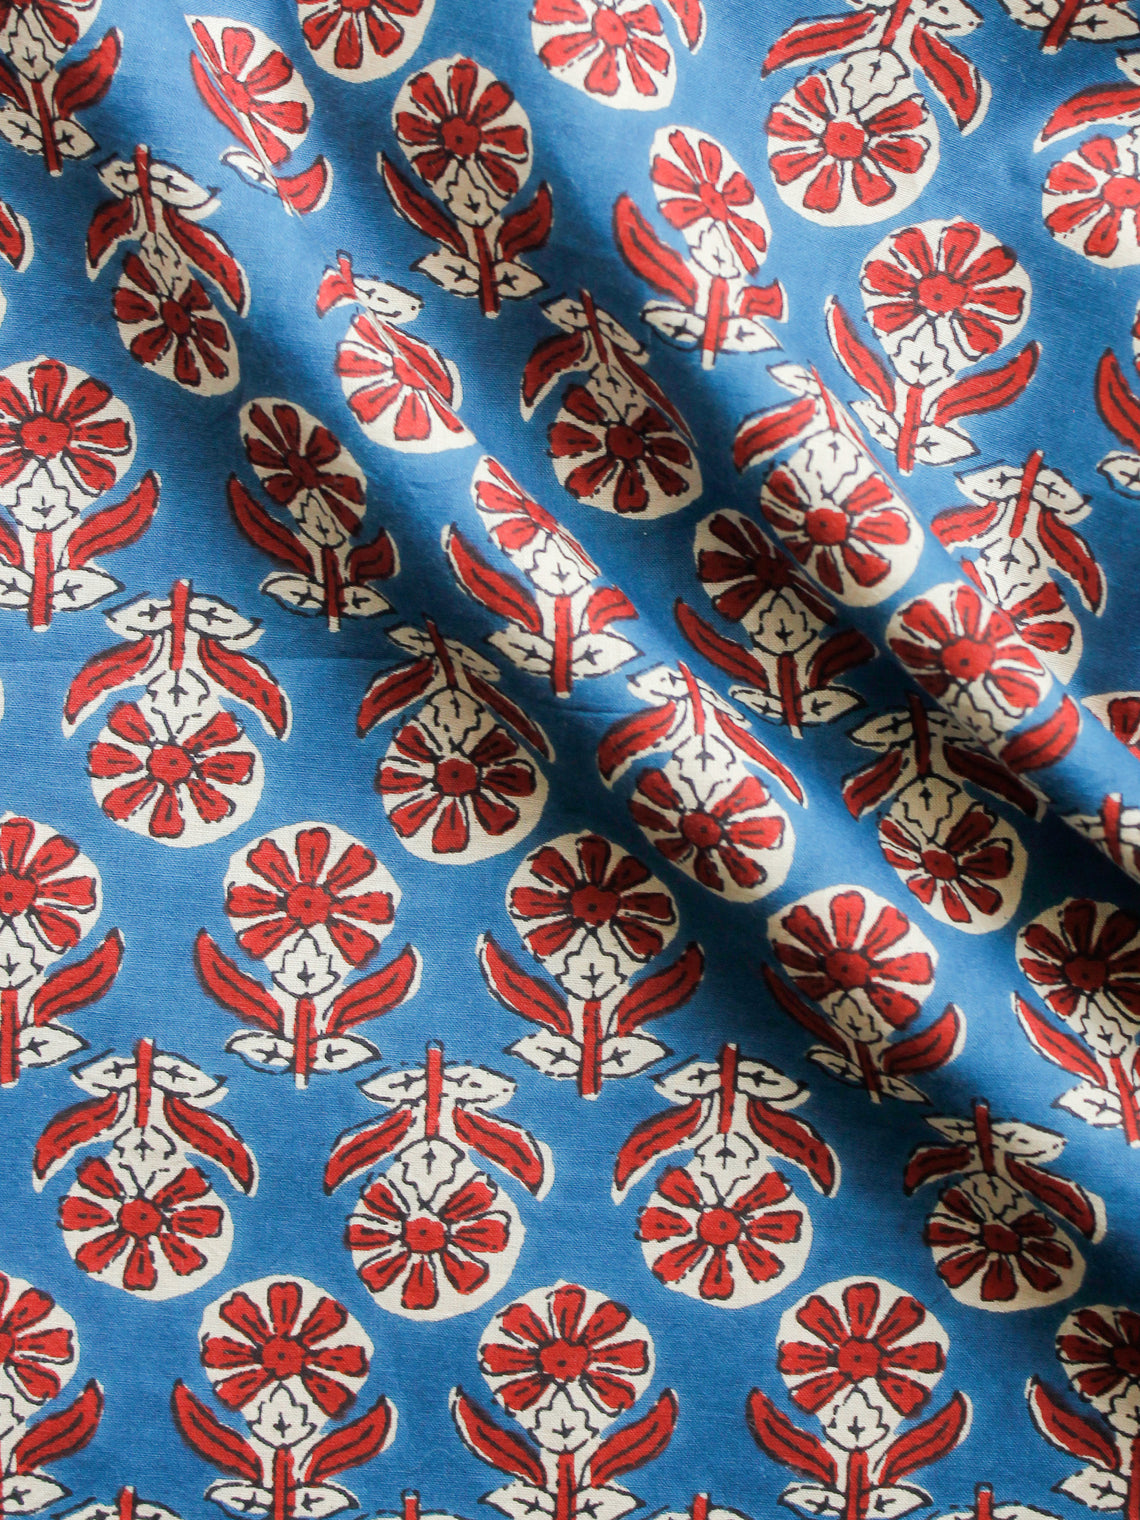 Blue Red Ivory Hand Block Printed Cotton Fabric Per Meter - F001F1485